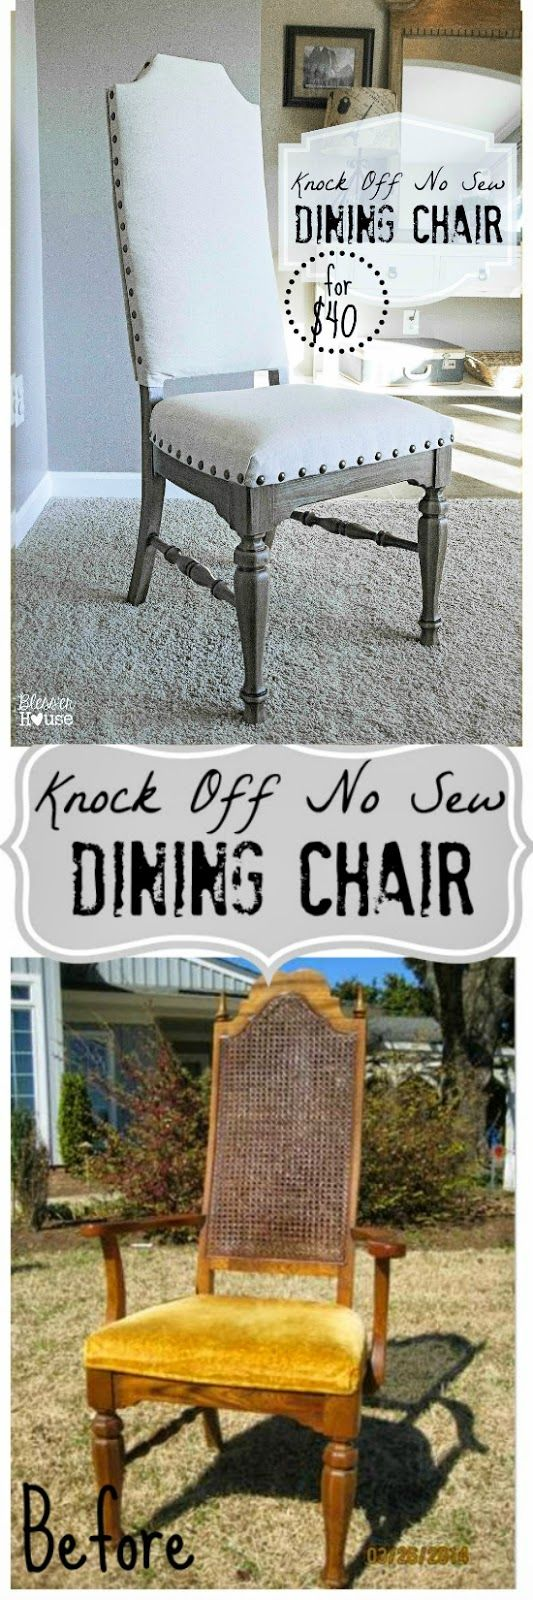 Knock Off No Sew Dining Chairs - Bless'er House  Material is drop cloths Chair legs have: •Kilz primer •Valspar paint in Montpelier Ashlar Gray (flat) •Minwax stain in Dark Walnut